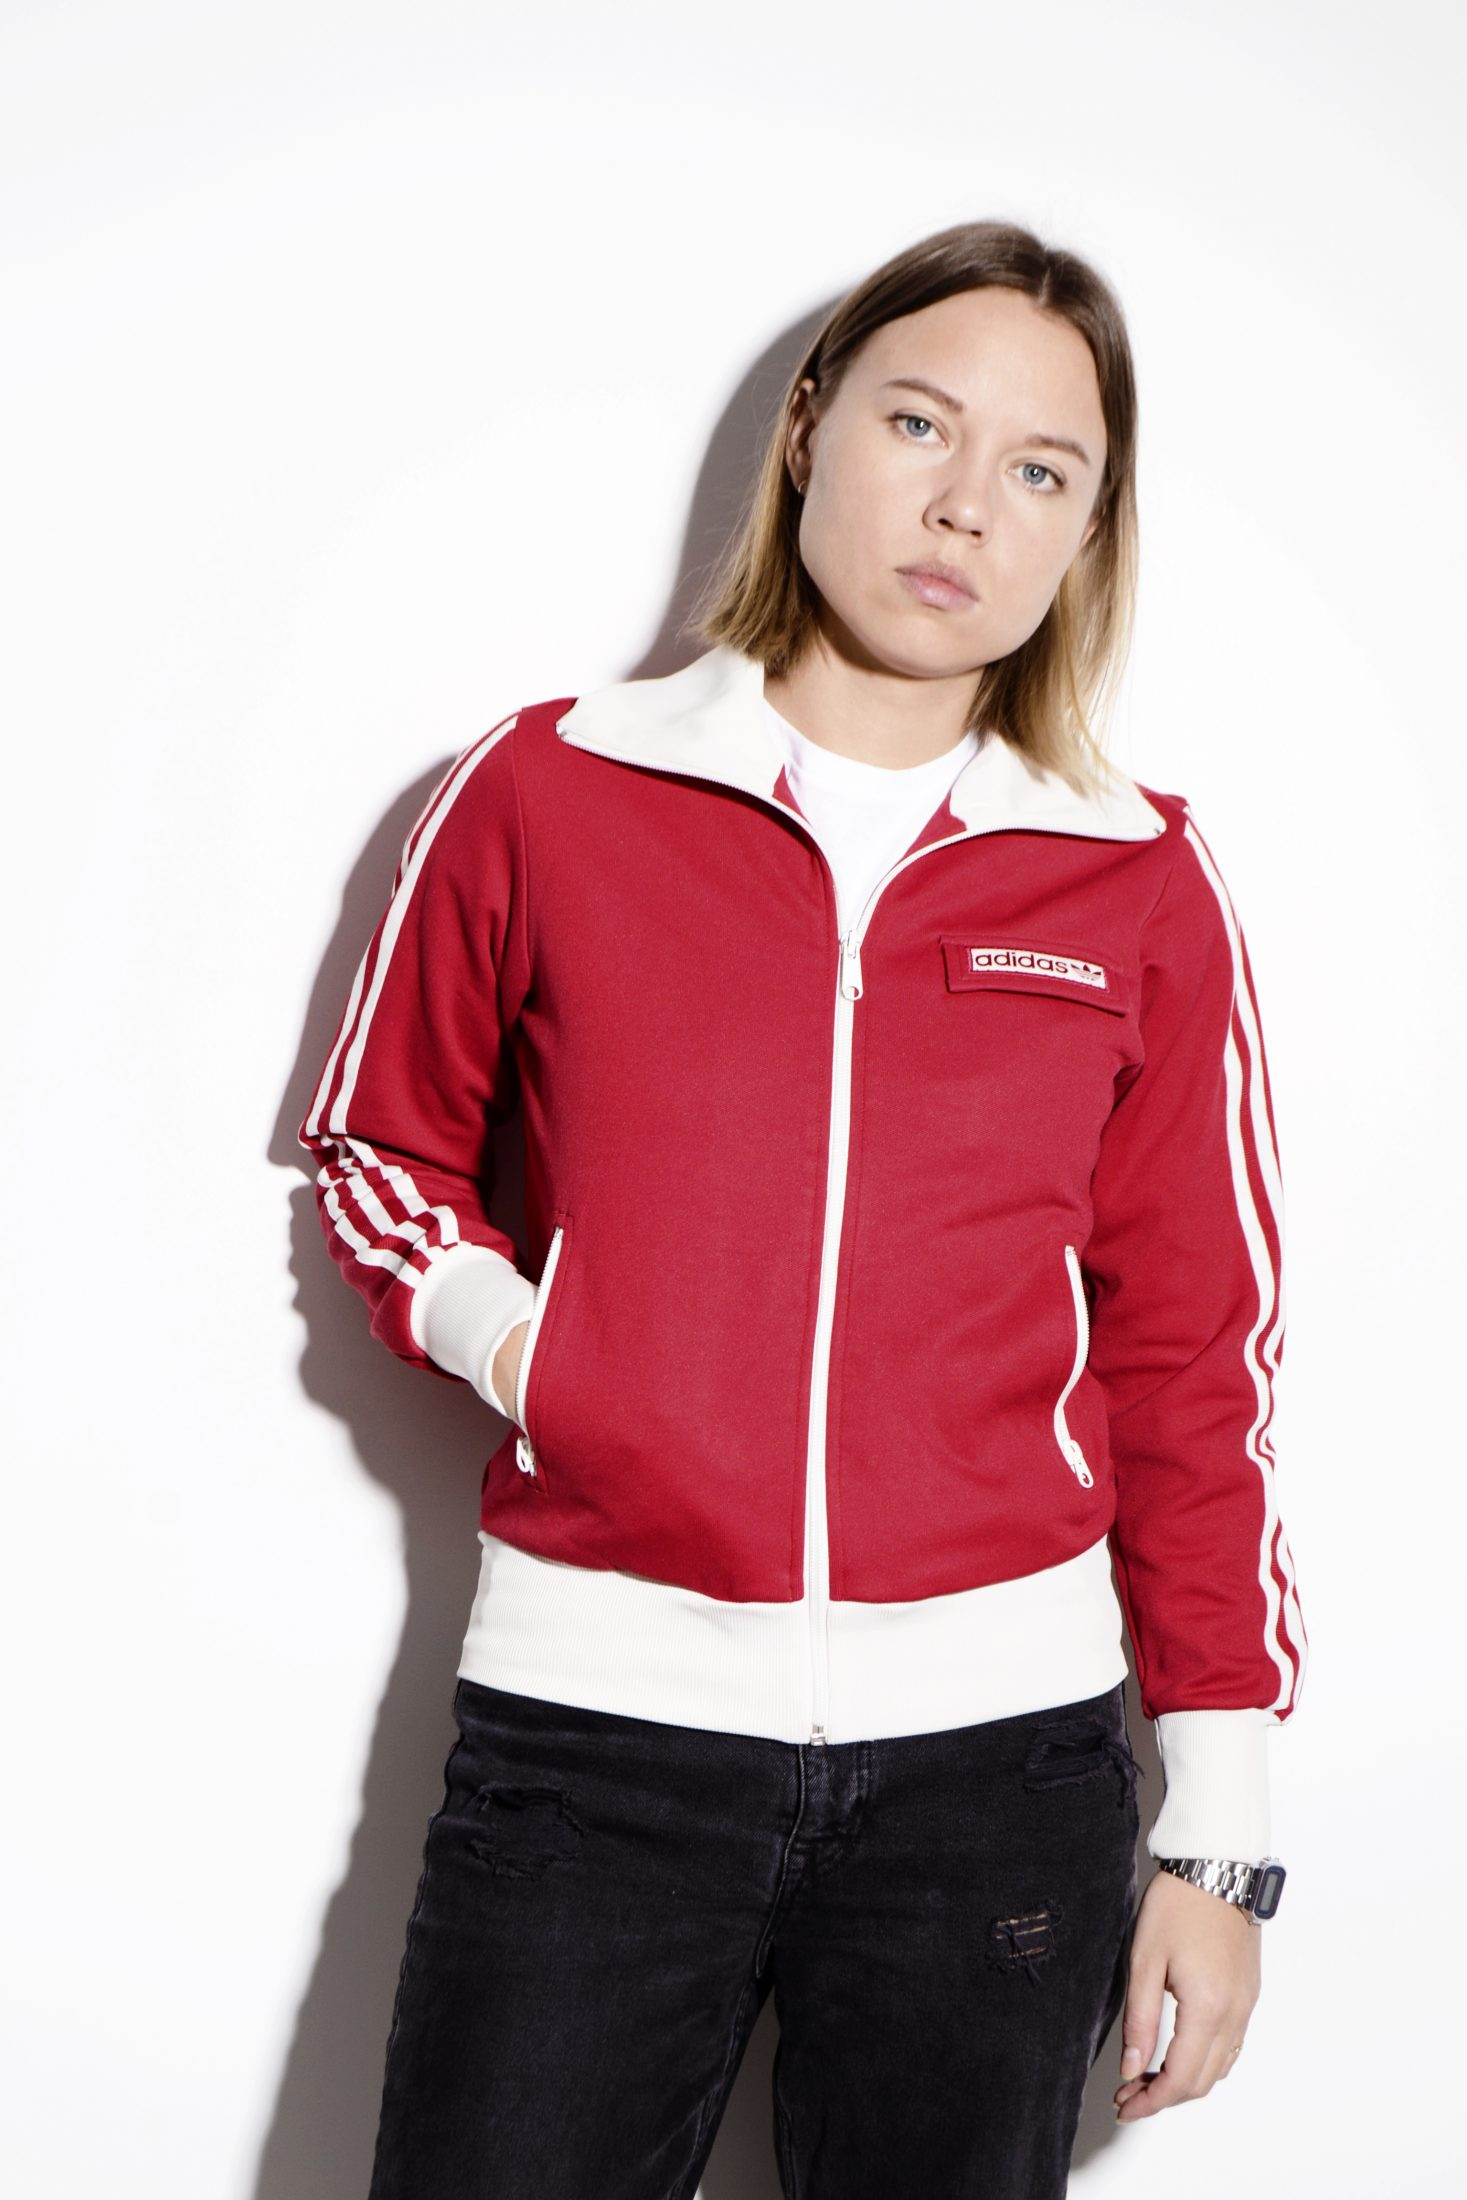 ADIDAS Originals vintage red & white classic retro 70's 80's track jacket